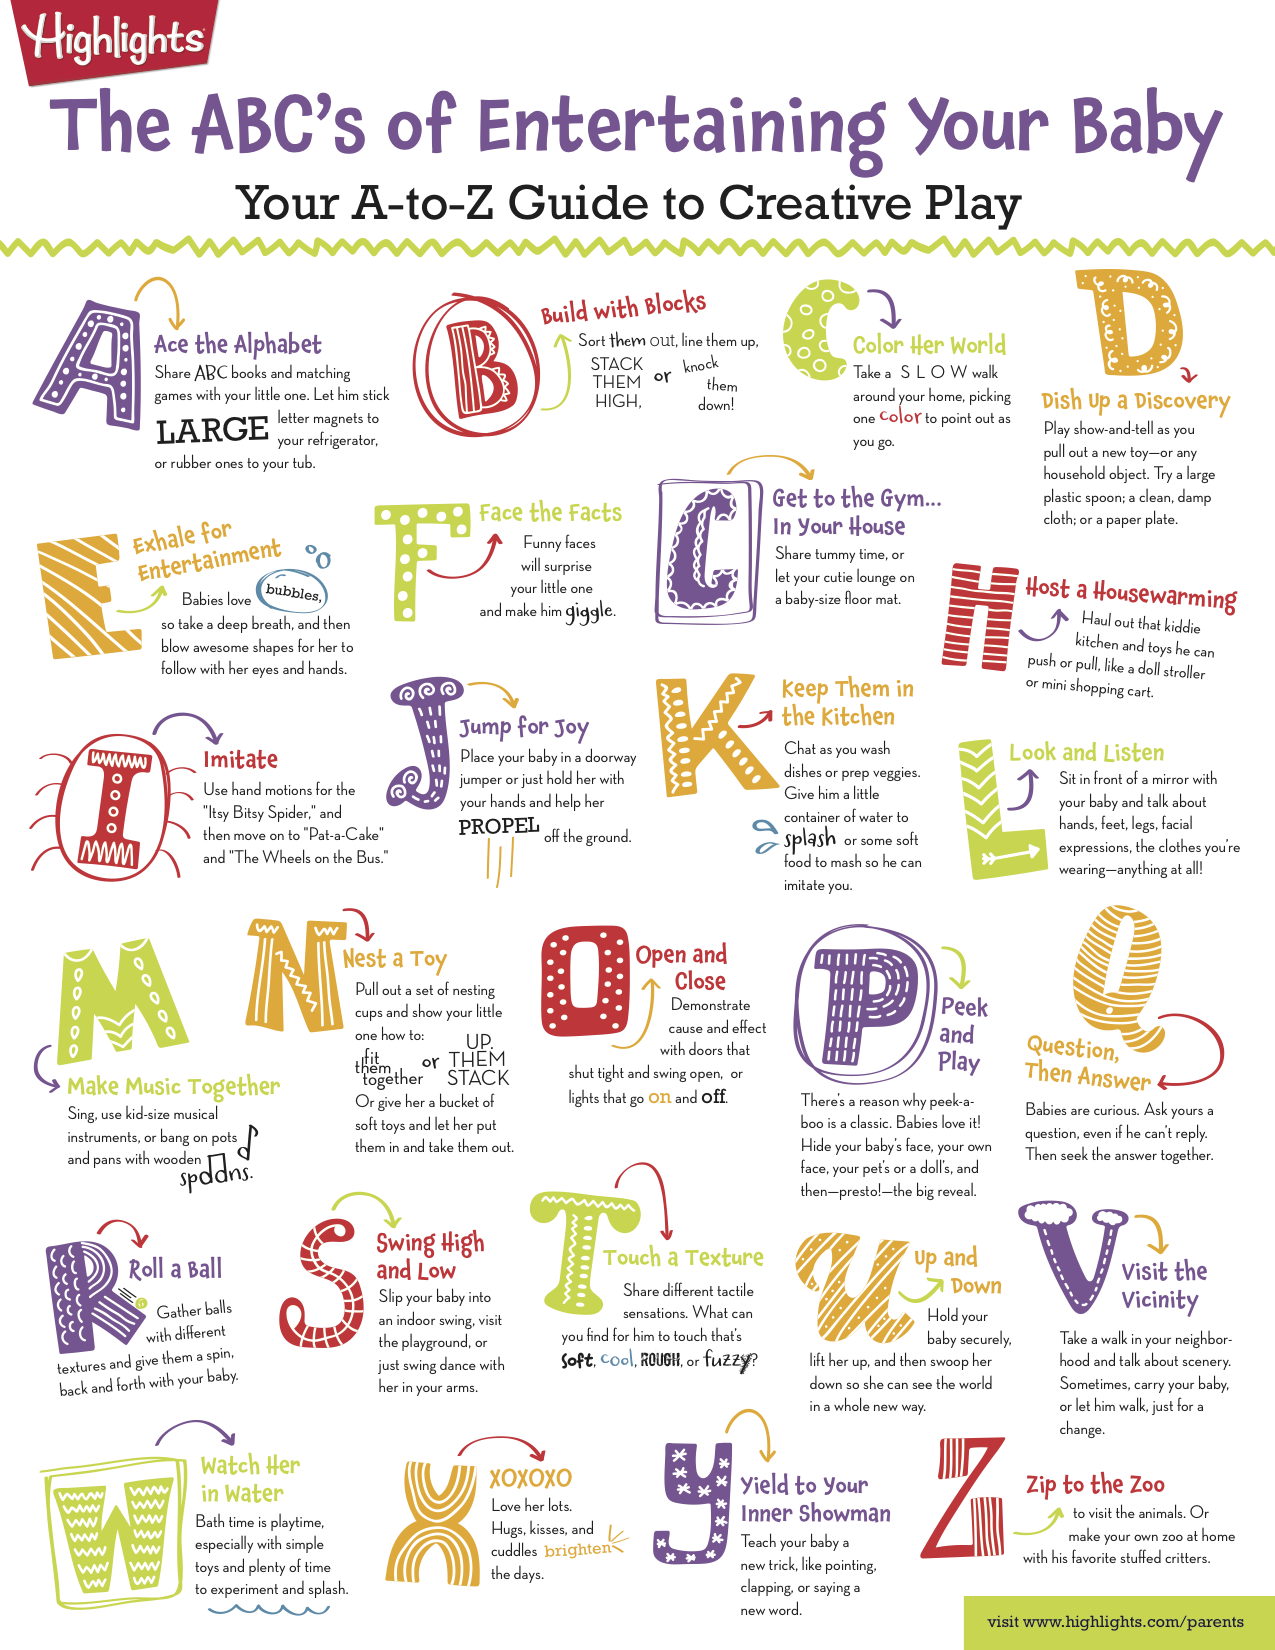 The ABC's of Entertaining Your Baby